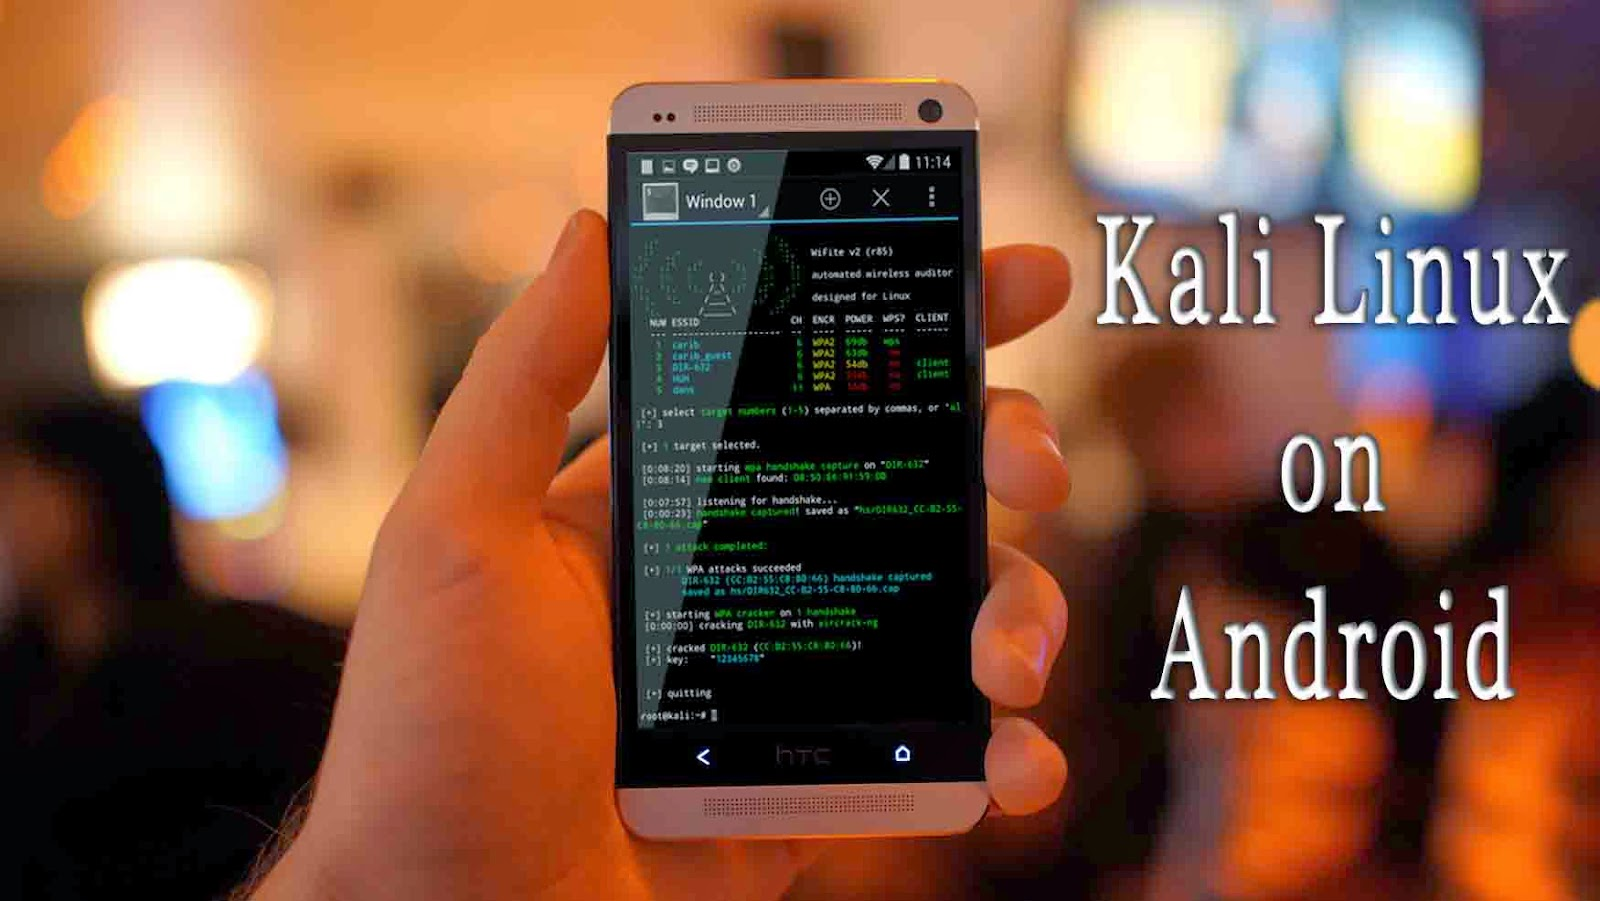 Kali Linux For Android   All Android Tips & Trick I Hacking I Root I